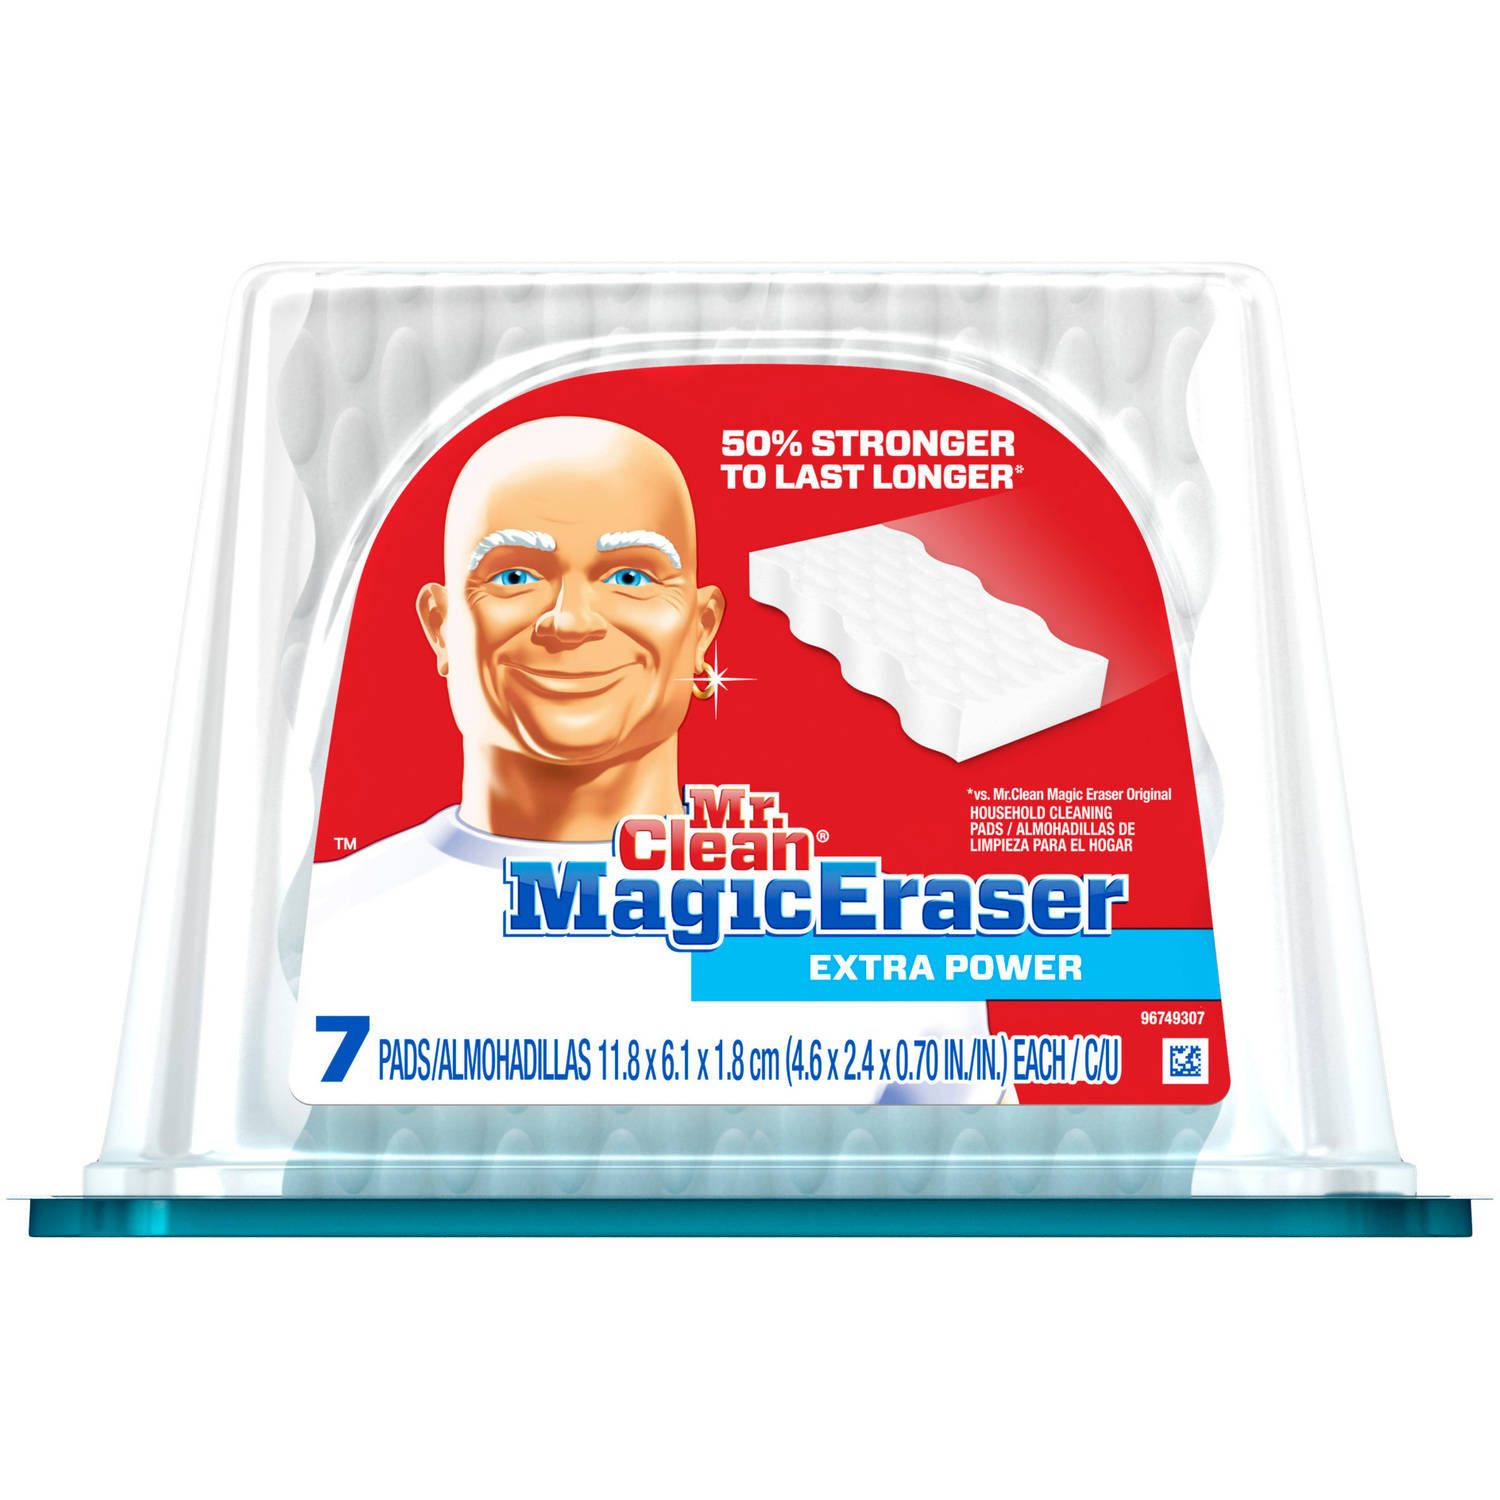 Mr Clean Magic Eraser Extra Power, 7 count